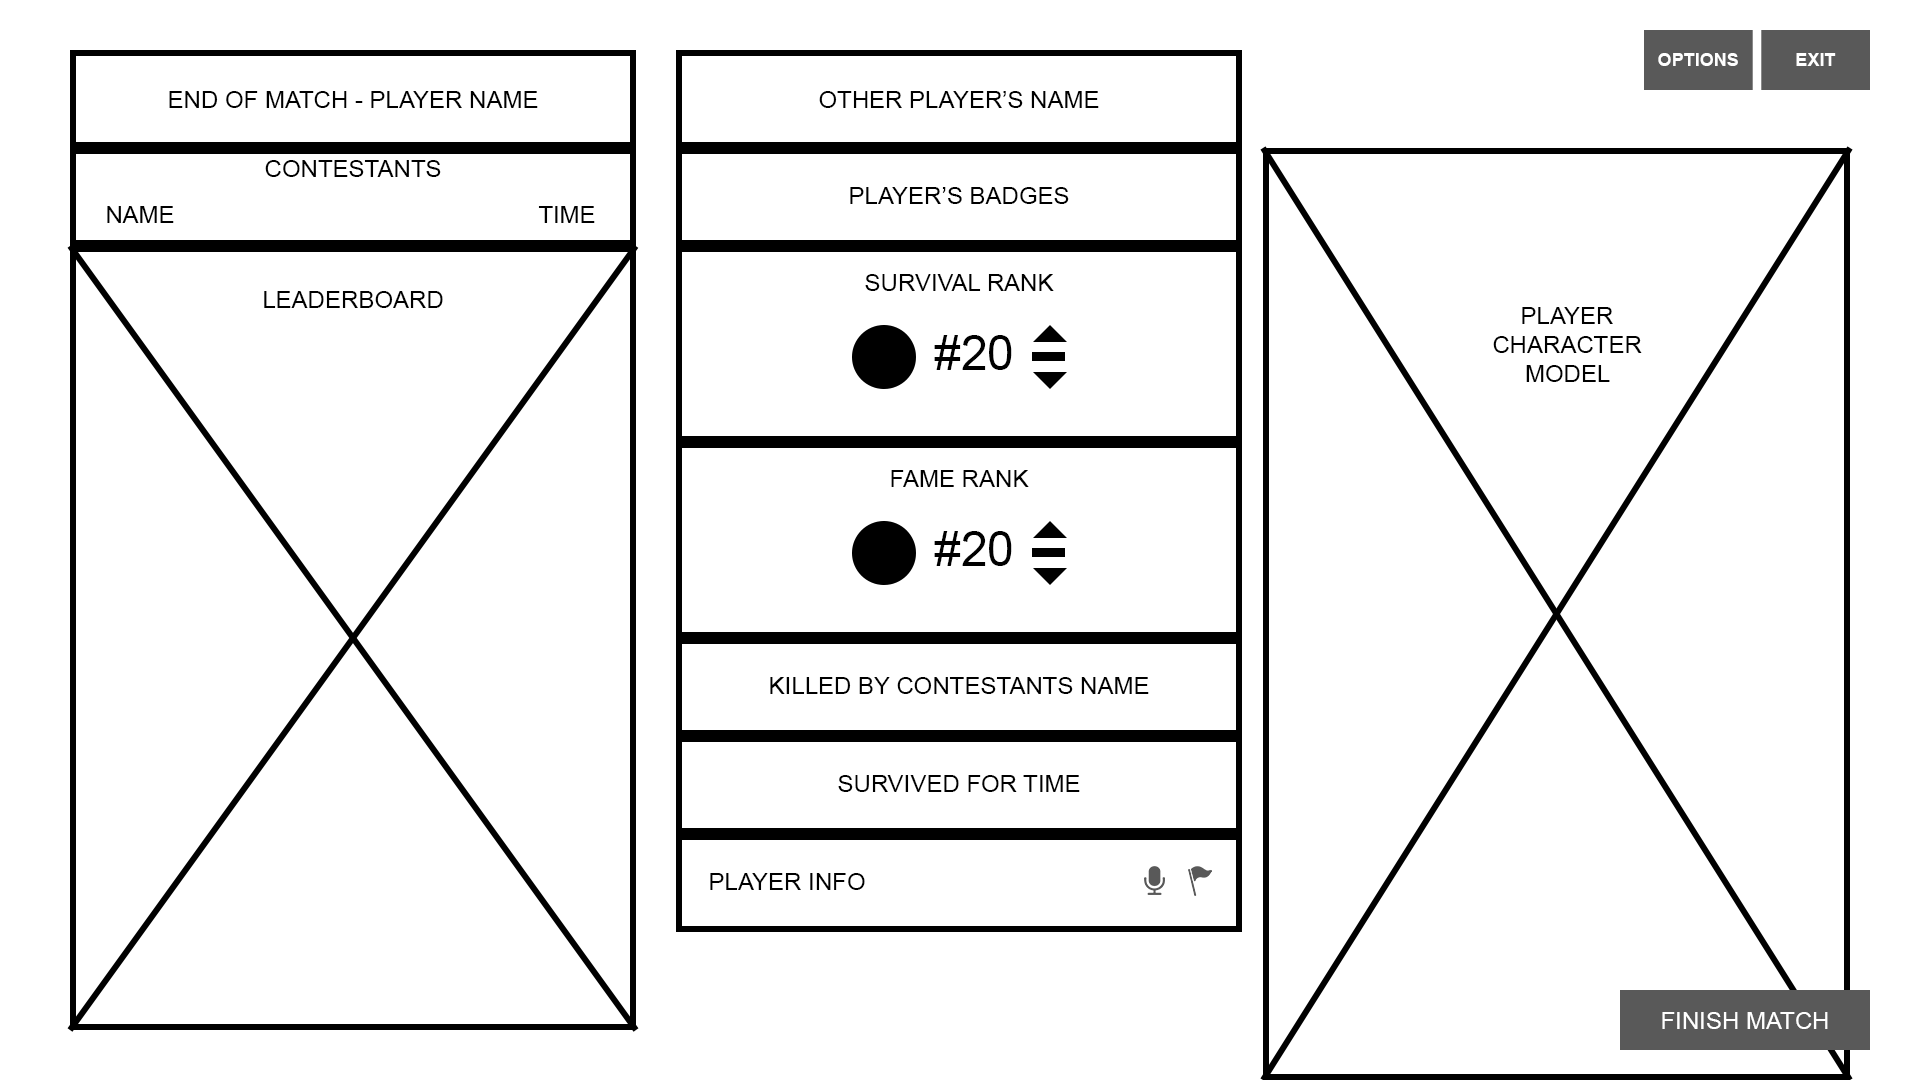 SOS_GameFlow_Wireframes_v4_00_29